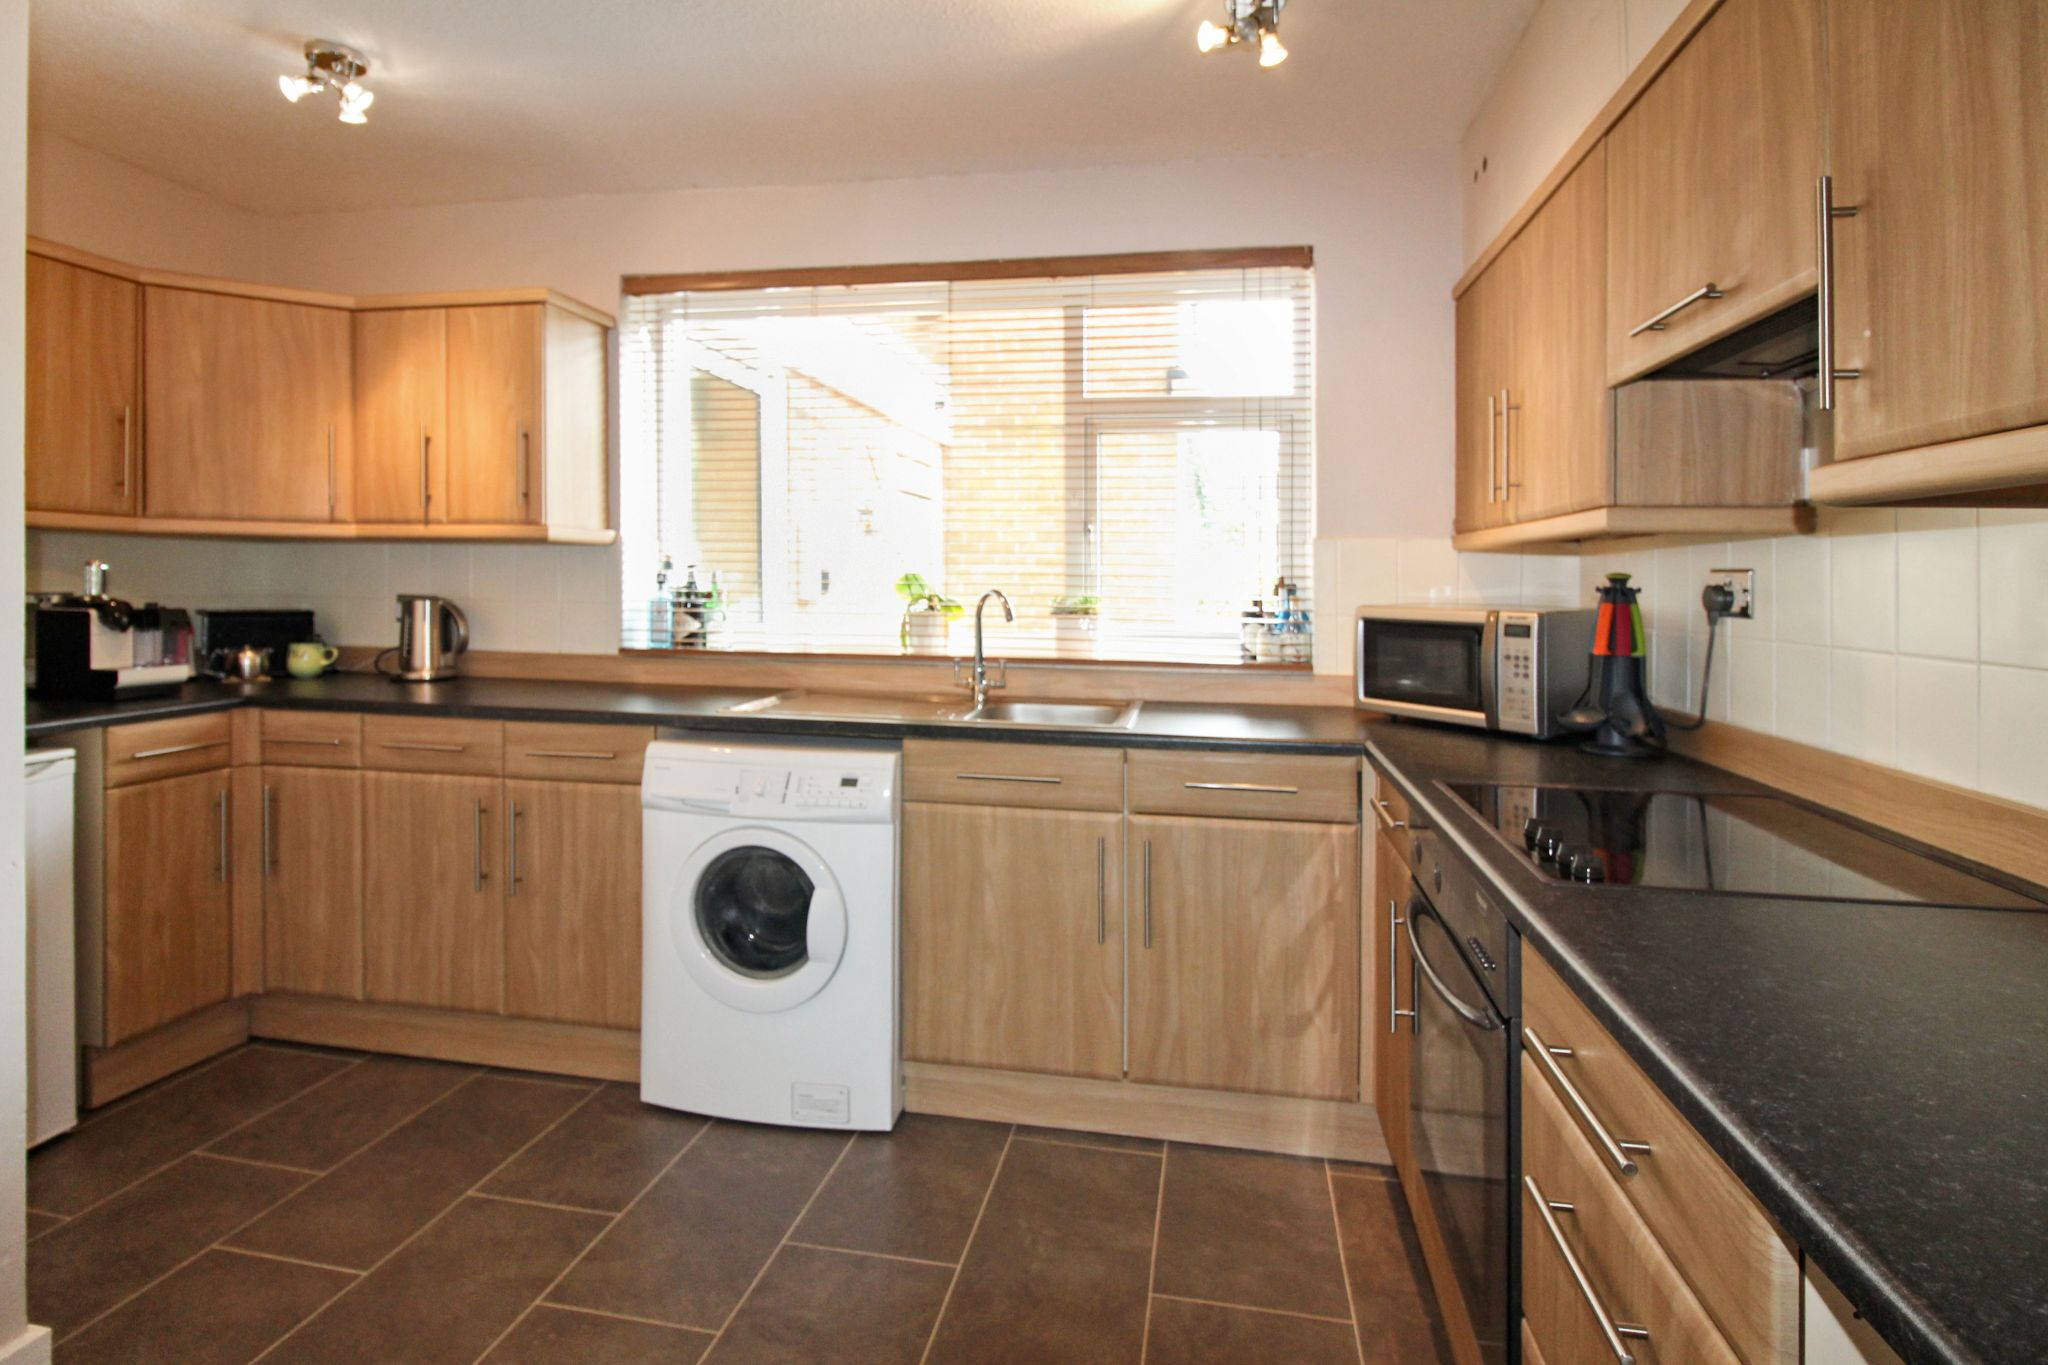 2 bedroom ground floor flat/apartment For Sale in Solihull - Photograph 3.